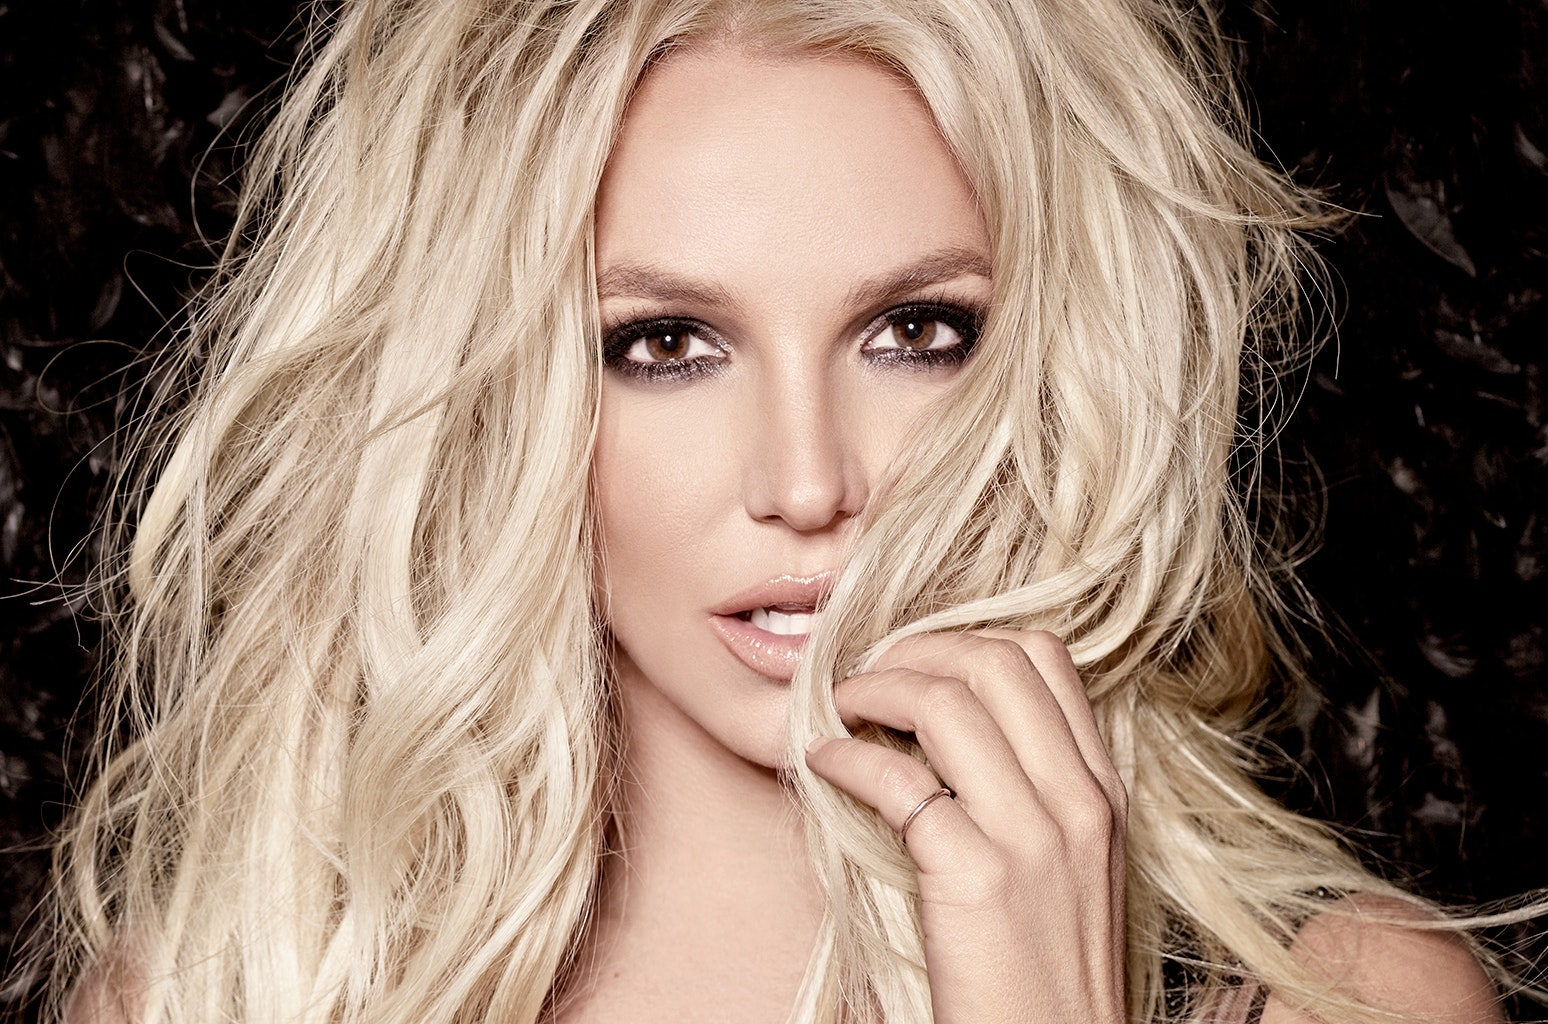 Britney Spears is coming to the UK to play 5 very special shows